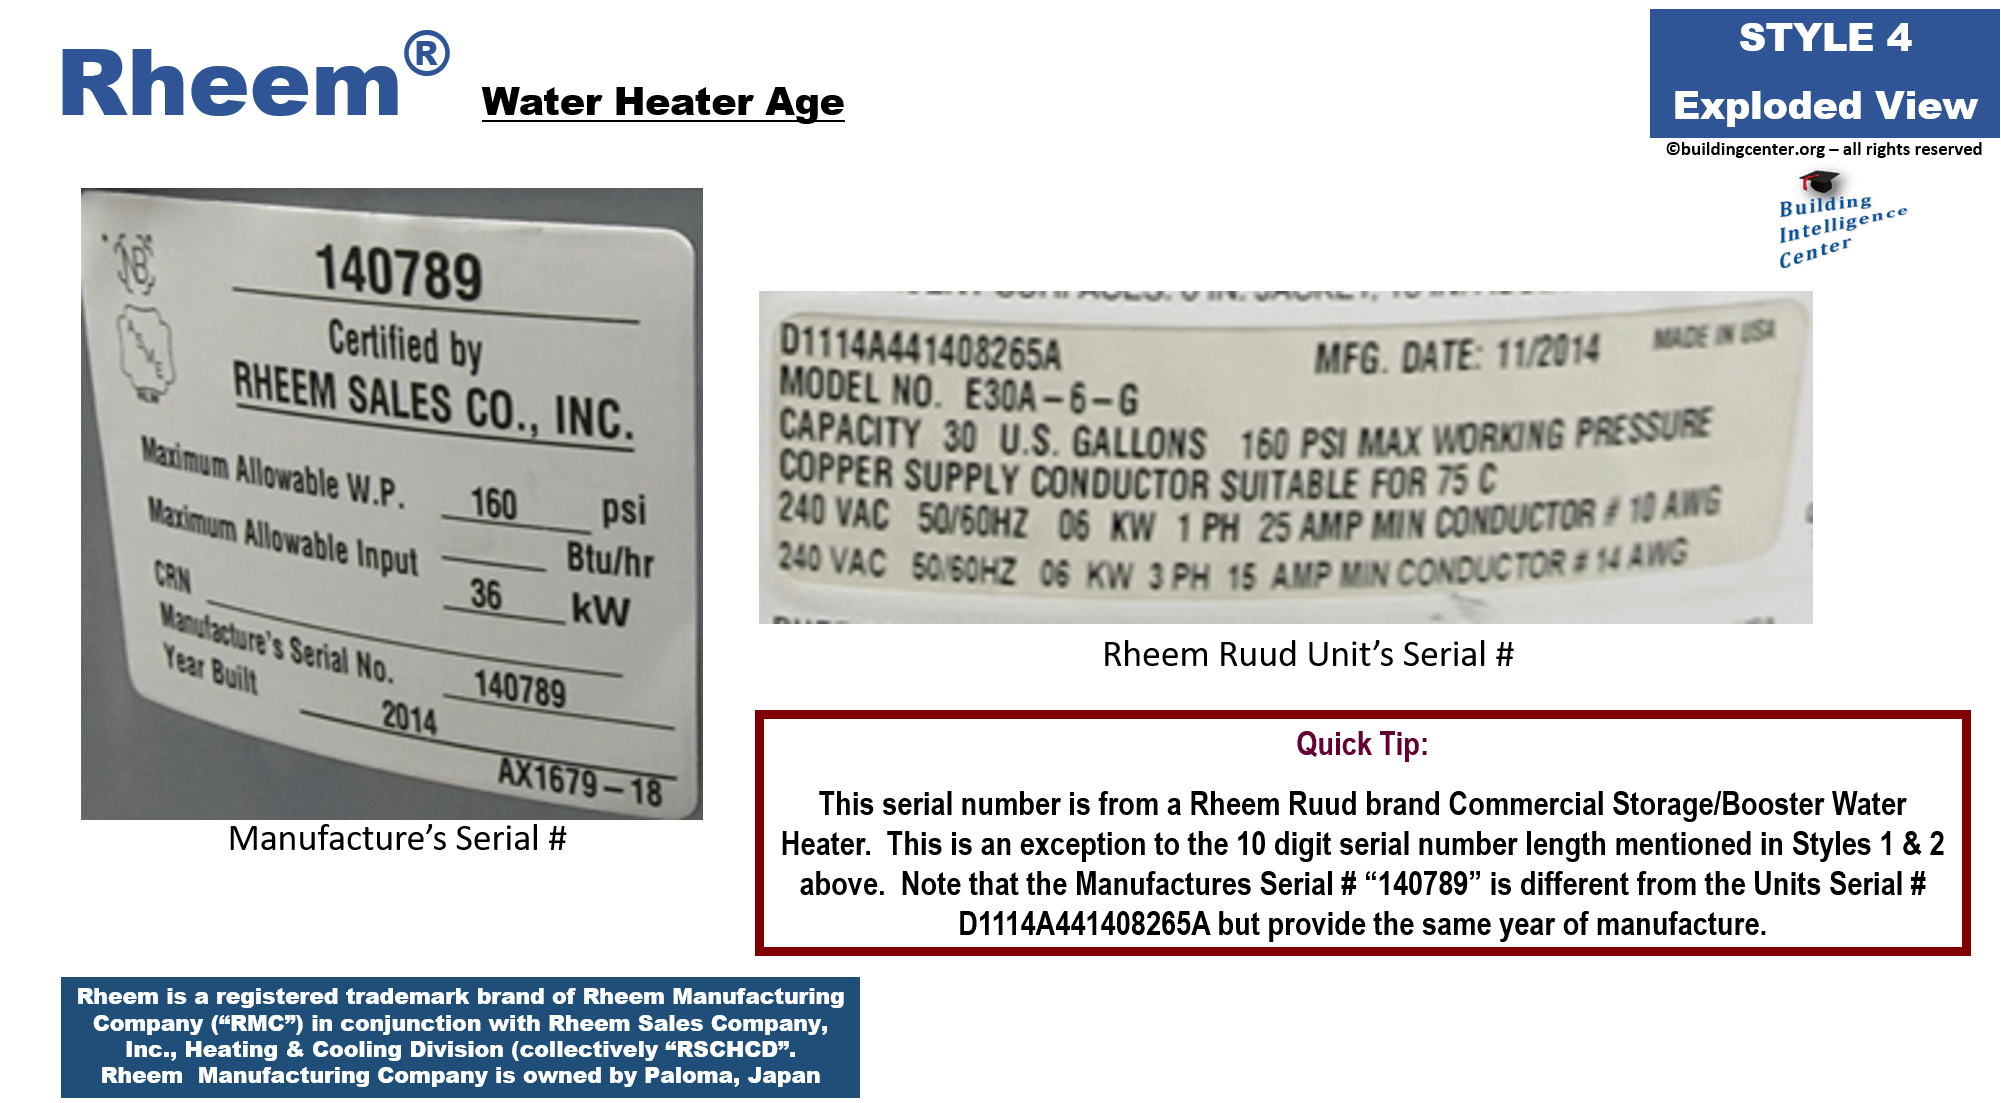 Chauffe Eau Rheem Rheem Water Heater Age Building Intelligence Center